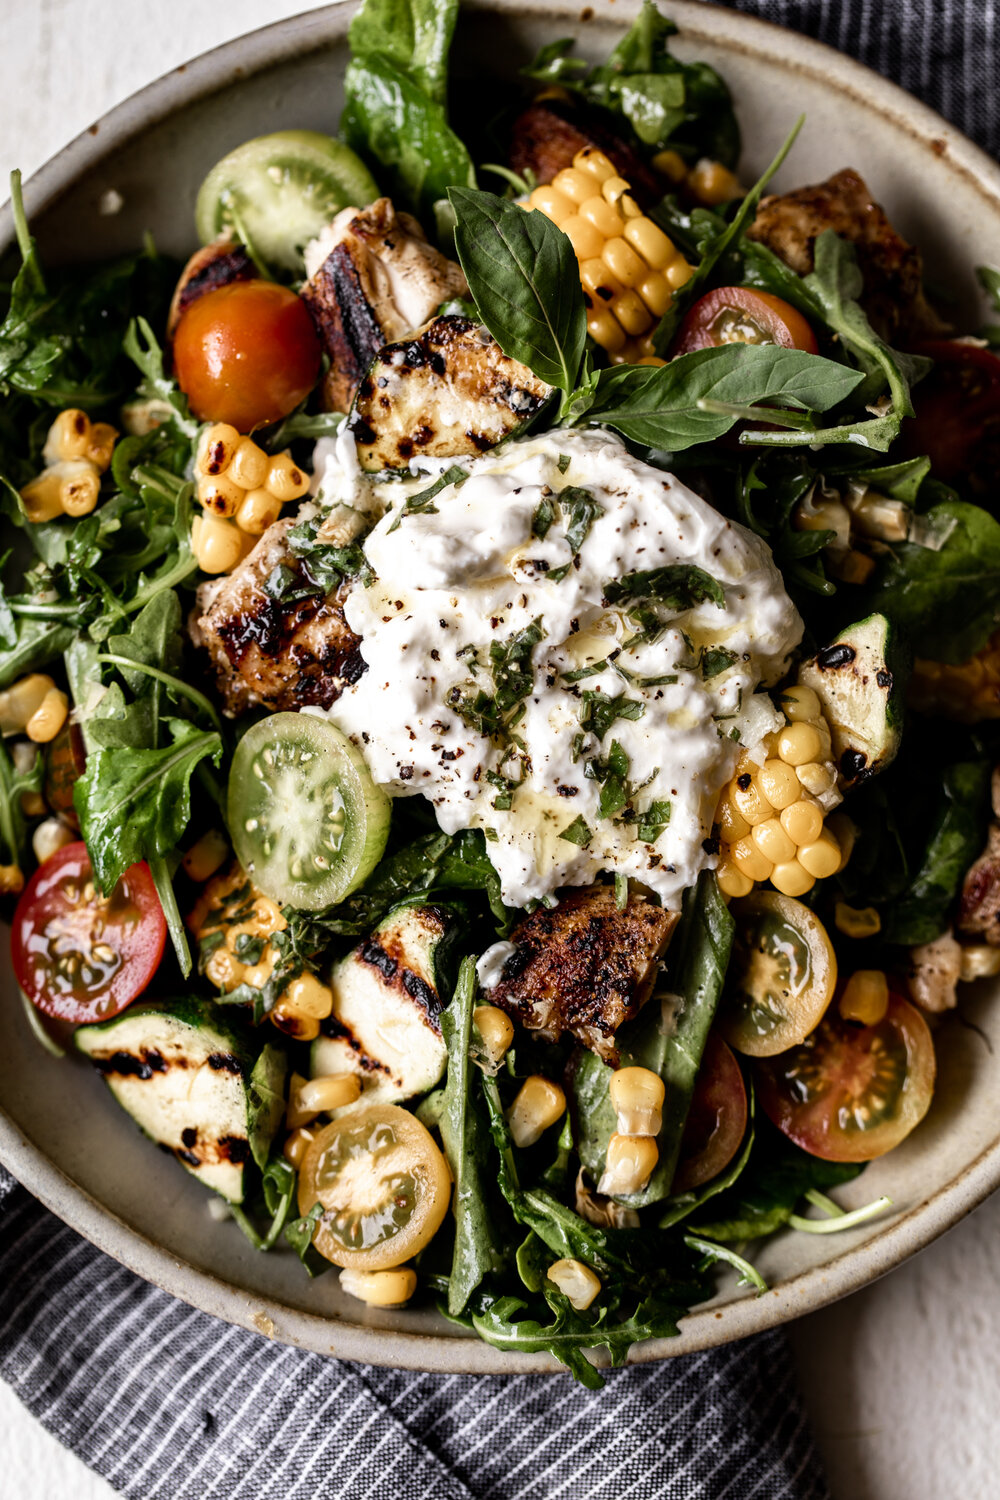 Heirloom Tomato & Grilled Veggie and Salad with Burrata & Basil Vinaigrette-49.jpg